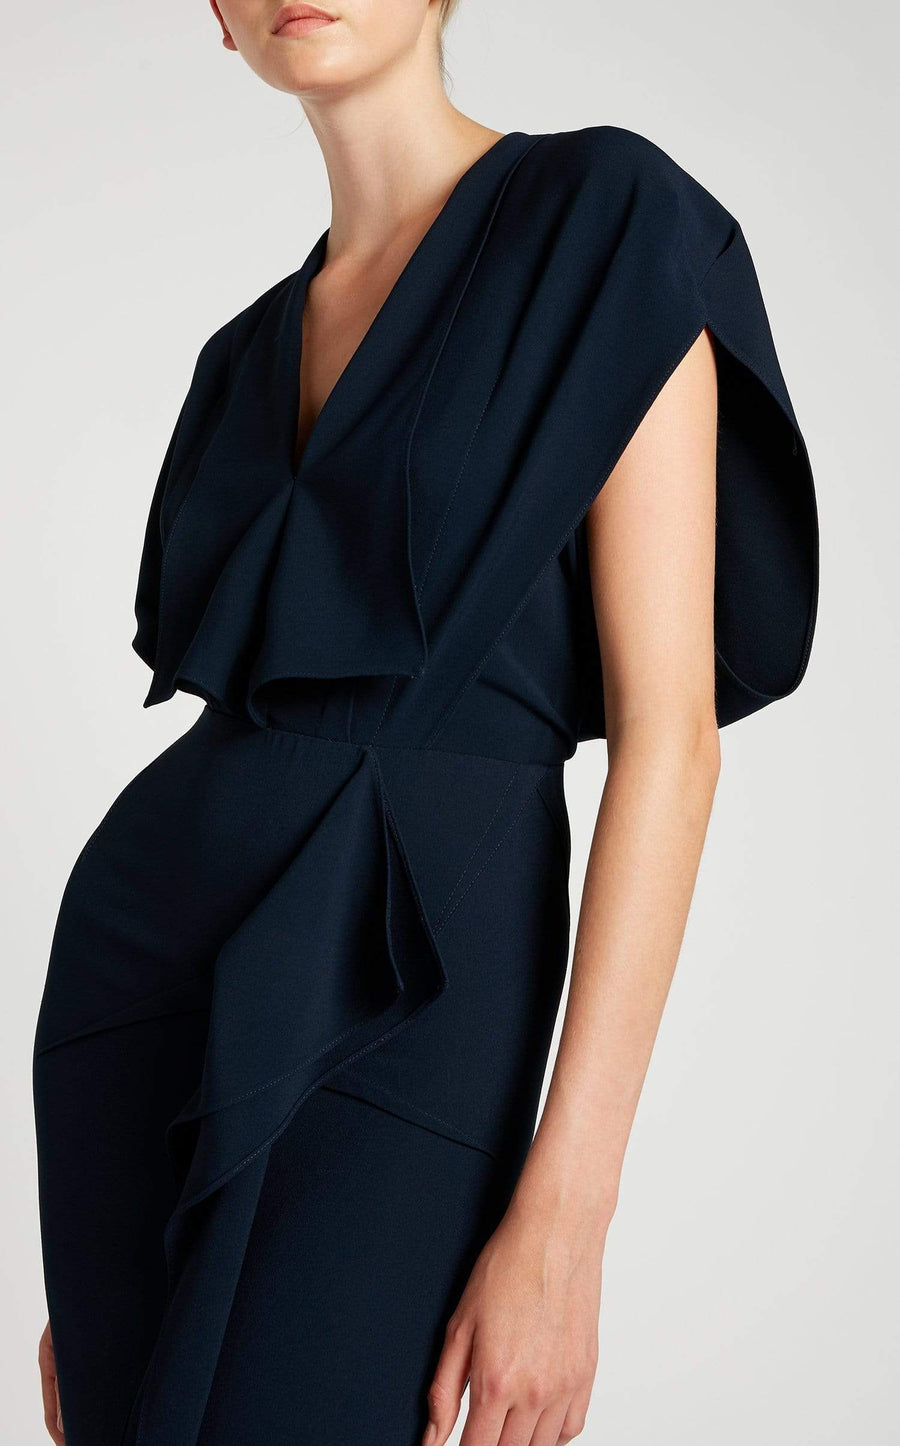 Lorre Gown In Navy from Roland Mouret